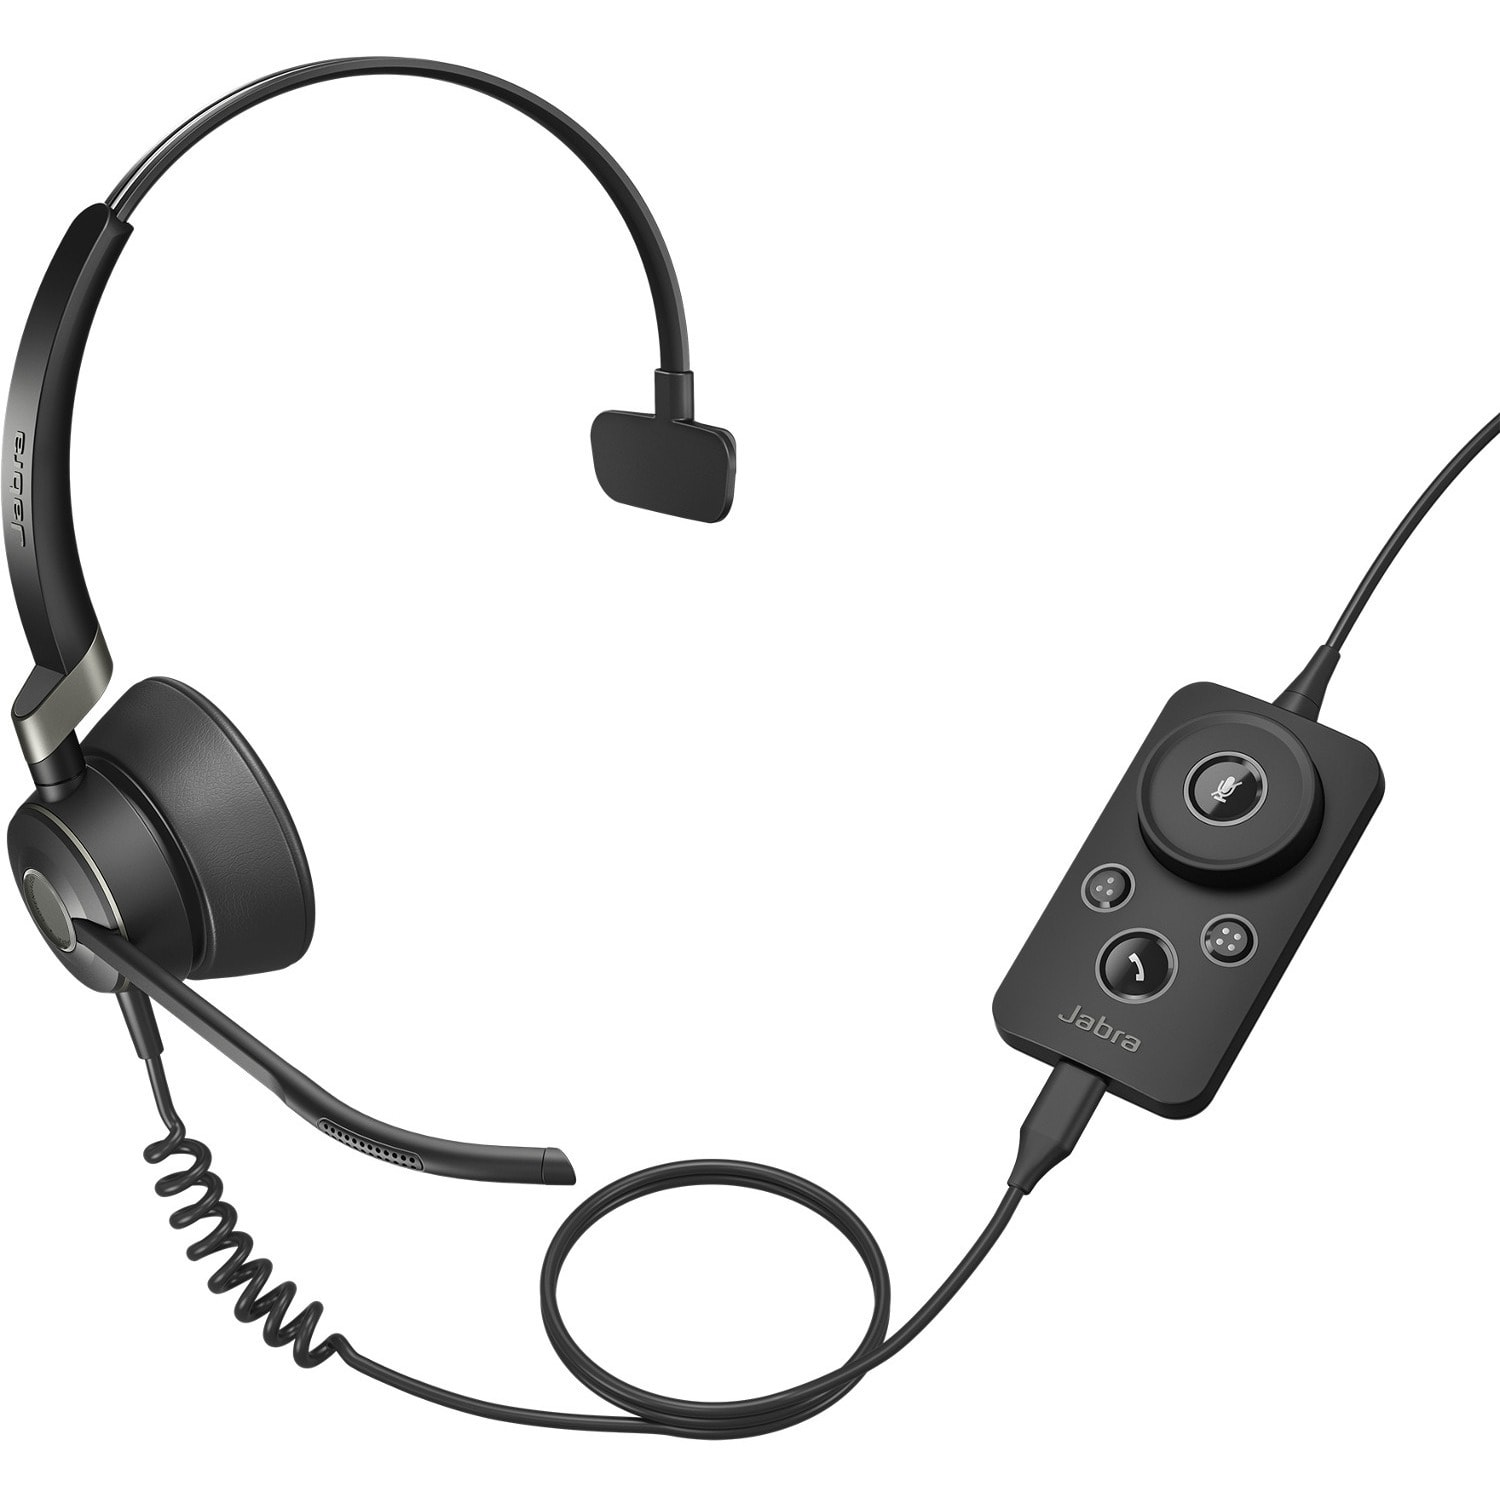 7814e191b95 Buy Jabra Engage 50 Wired Mono Headset - Over-the-head - Supra-aural ...